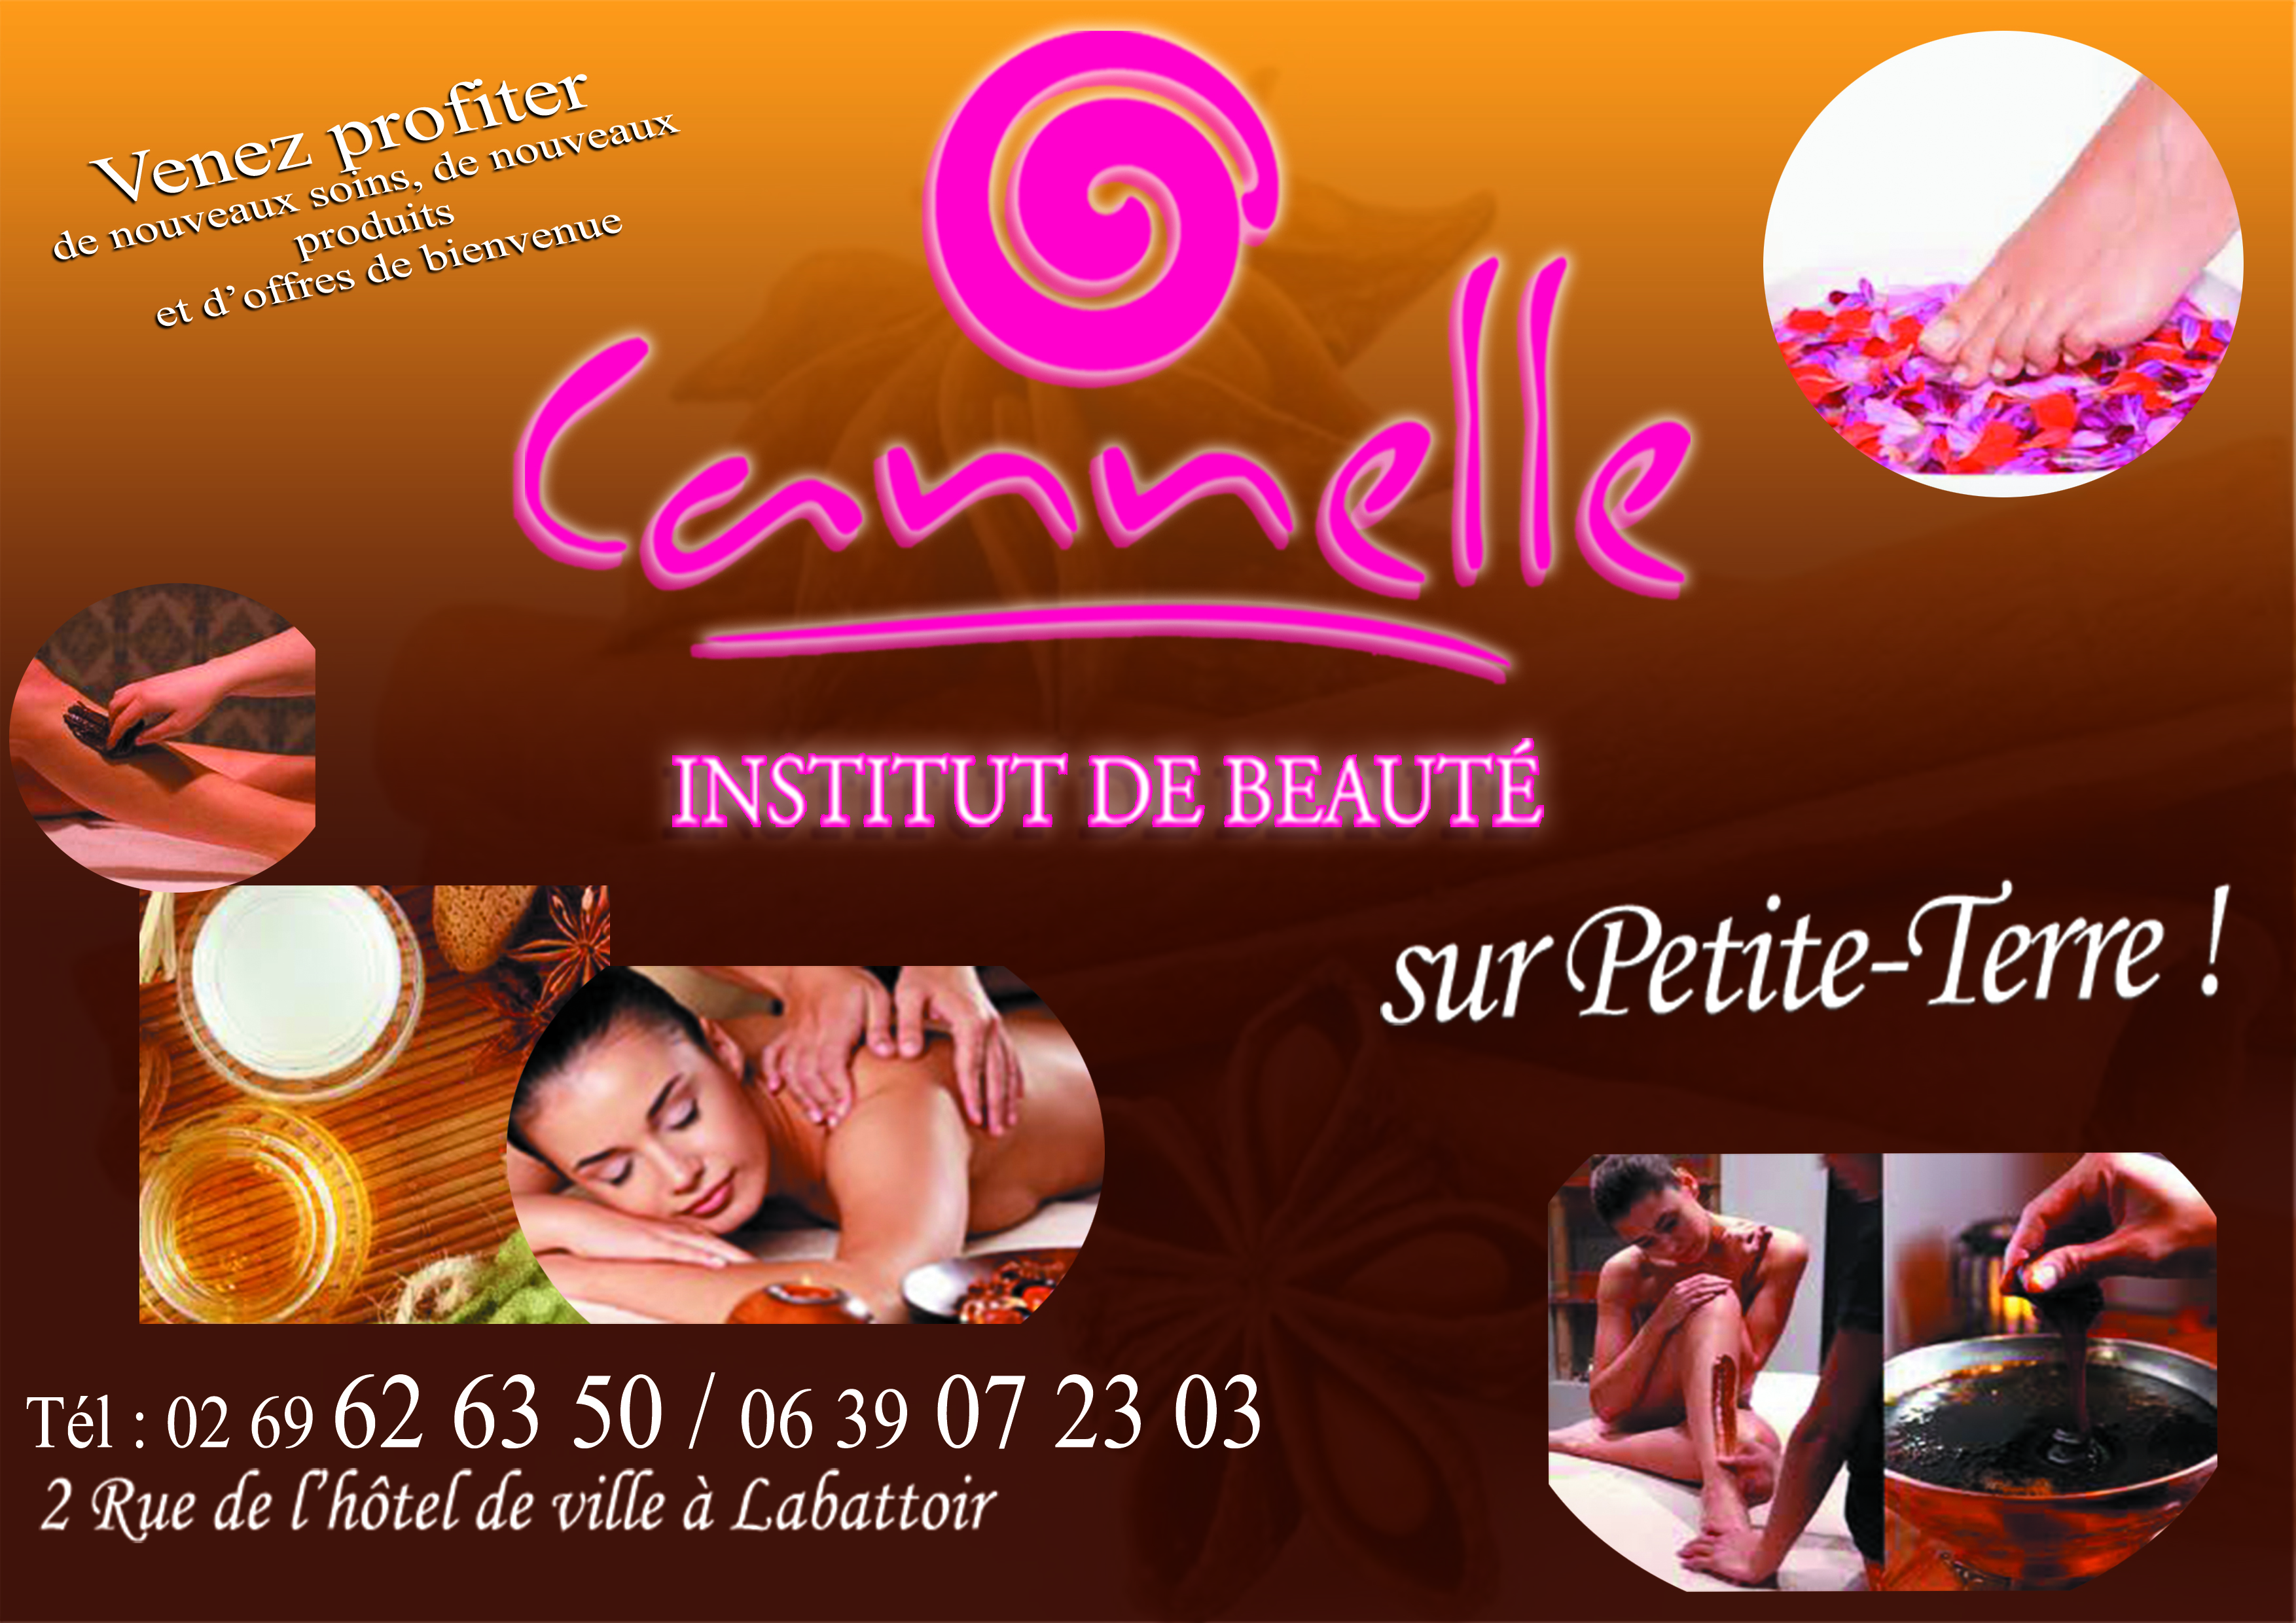 Cannelle Petite terre